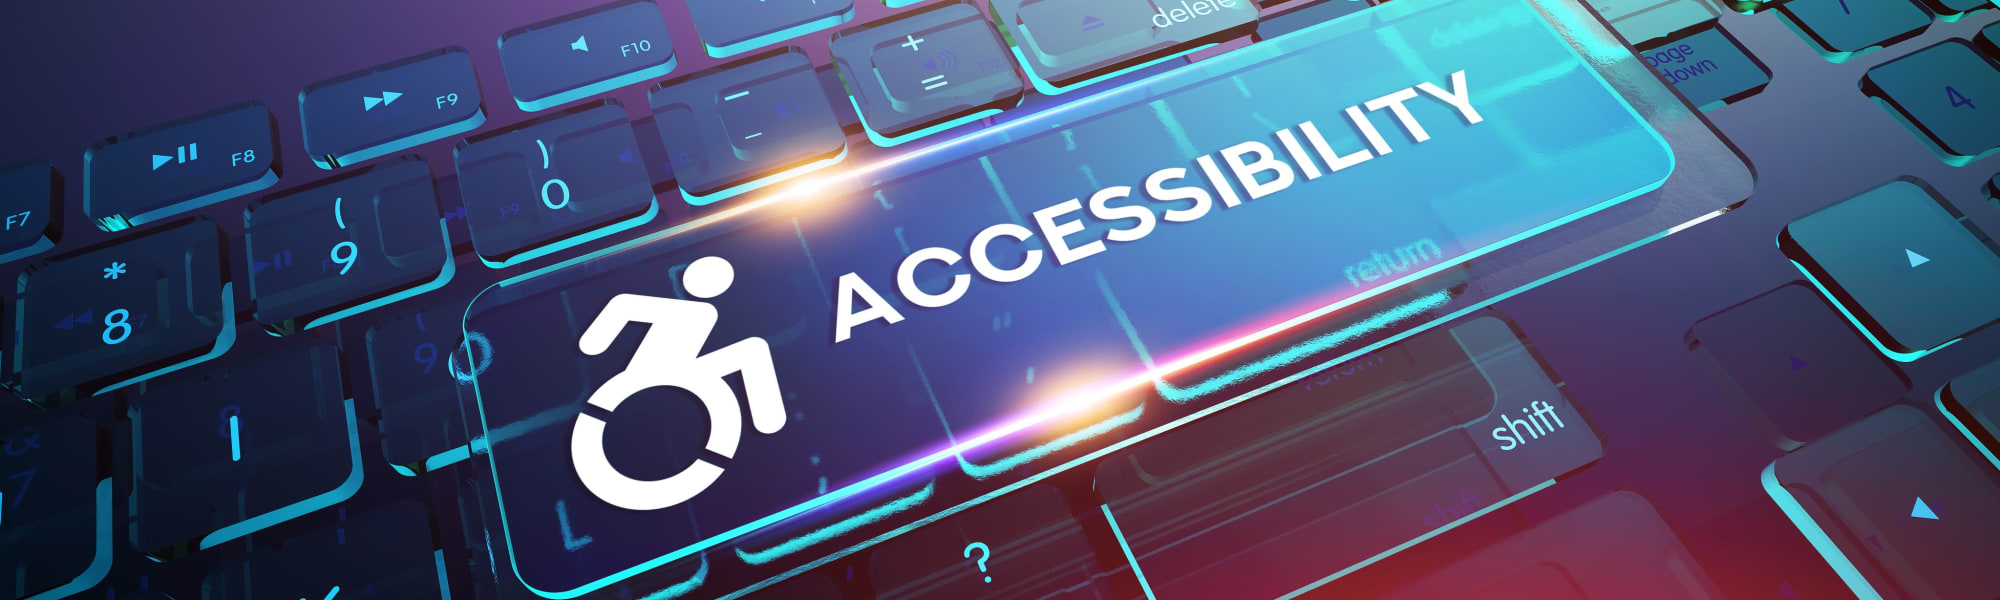 Accessibility policy for Olympus Northpoint in Albuquerque, New Mexico